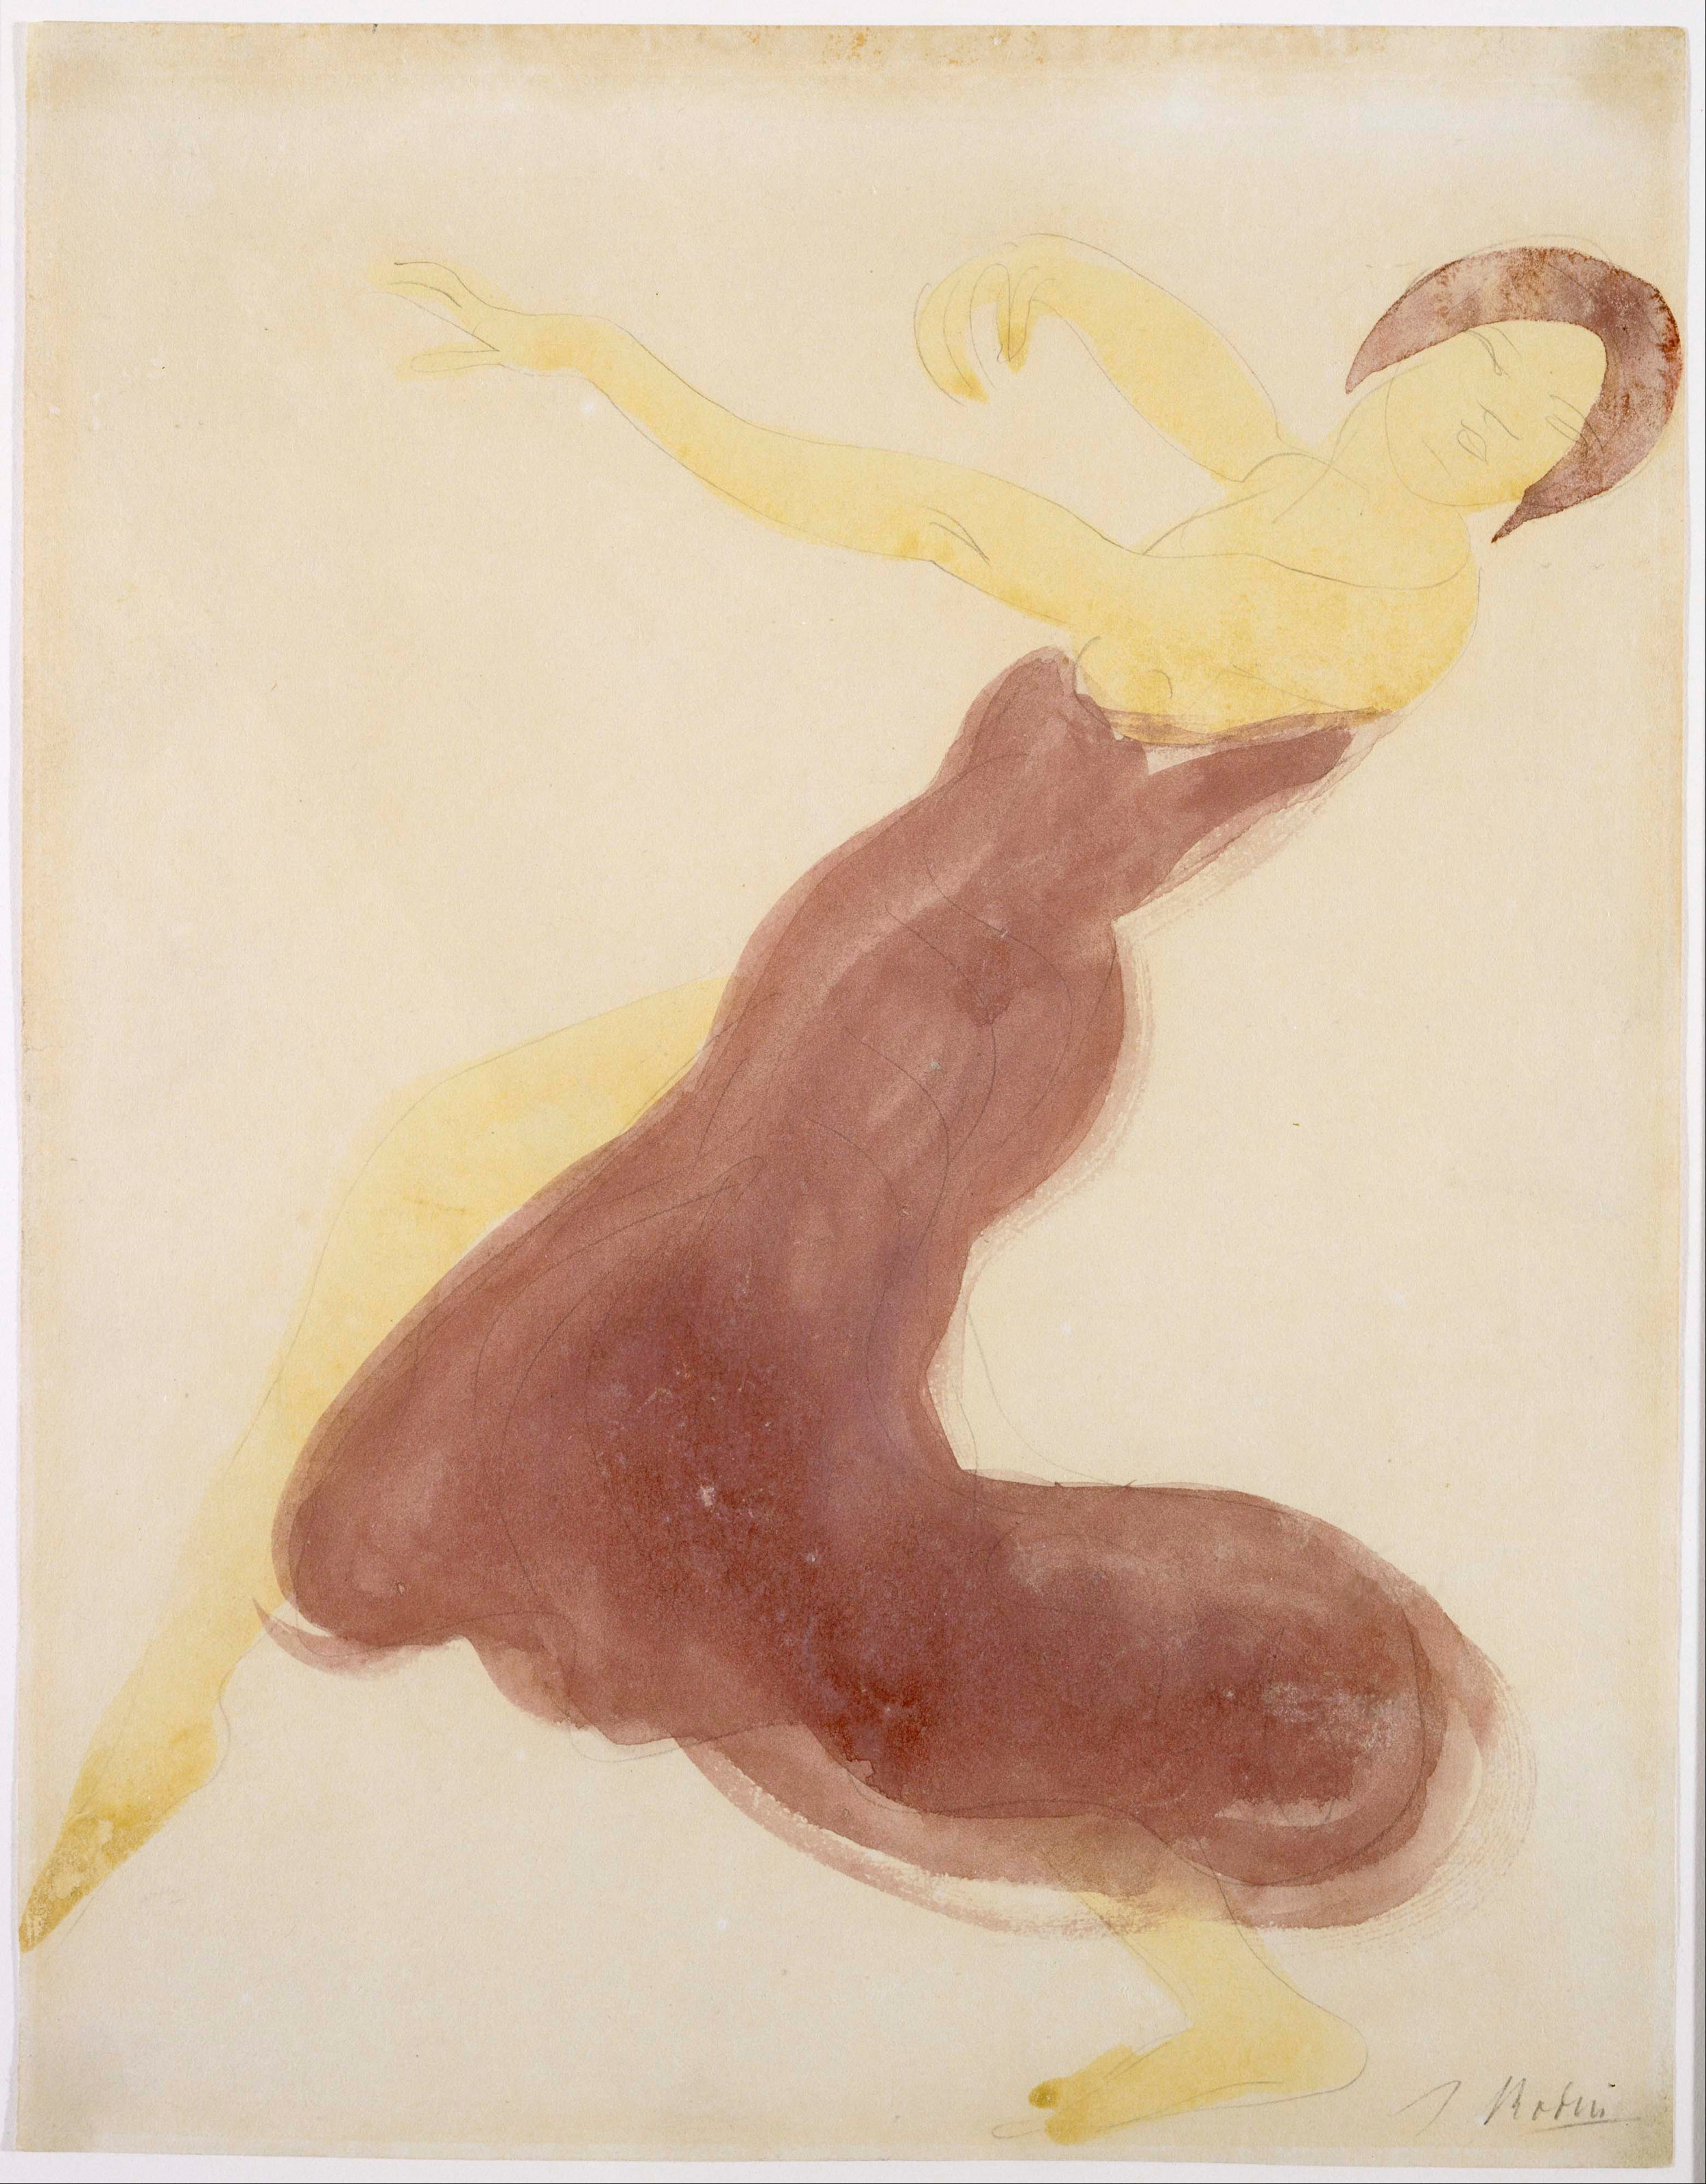 Auguste_Rodin_-_Dancer_-_Google_Art_Project.jpg